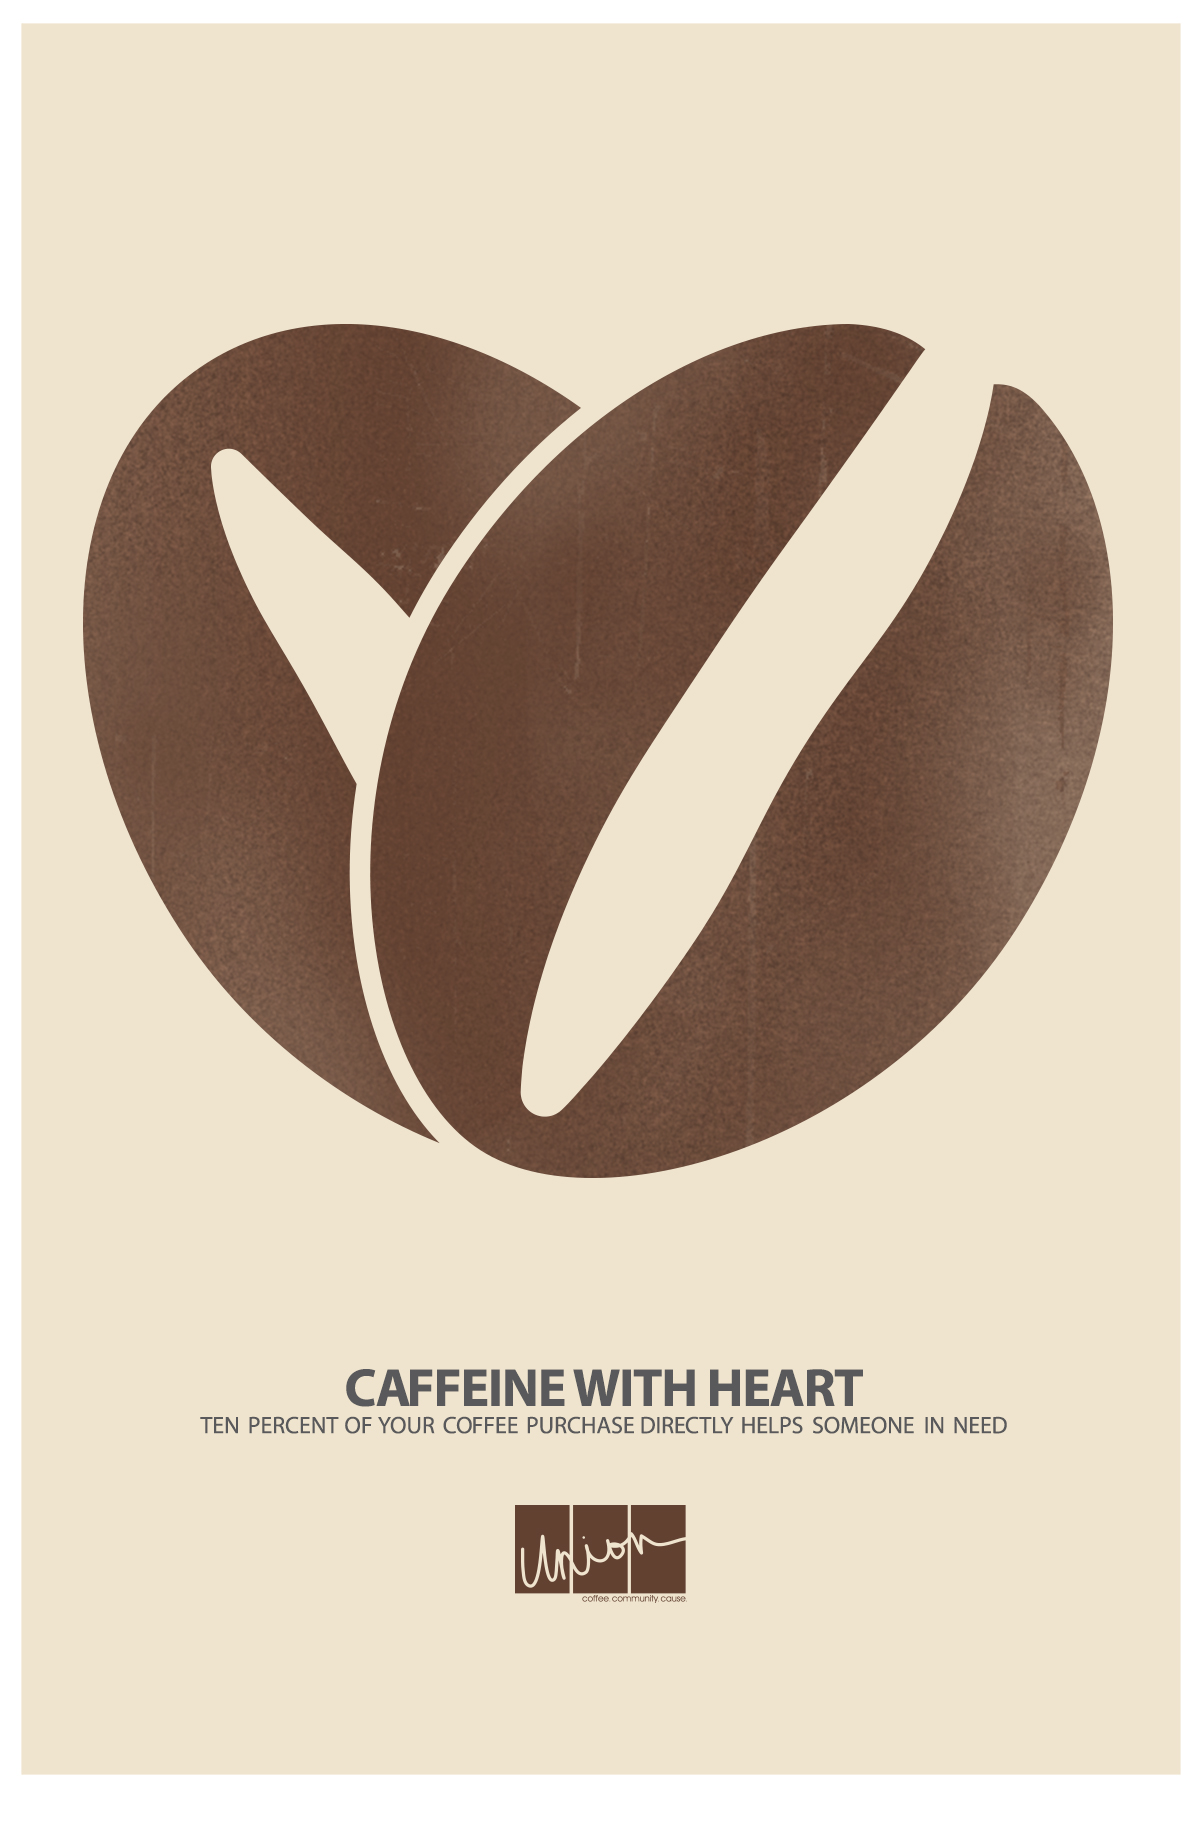 Union Coffee Poster for Child Literacy - Caffeine With Heart by Tidal Wave Marketing